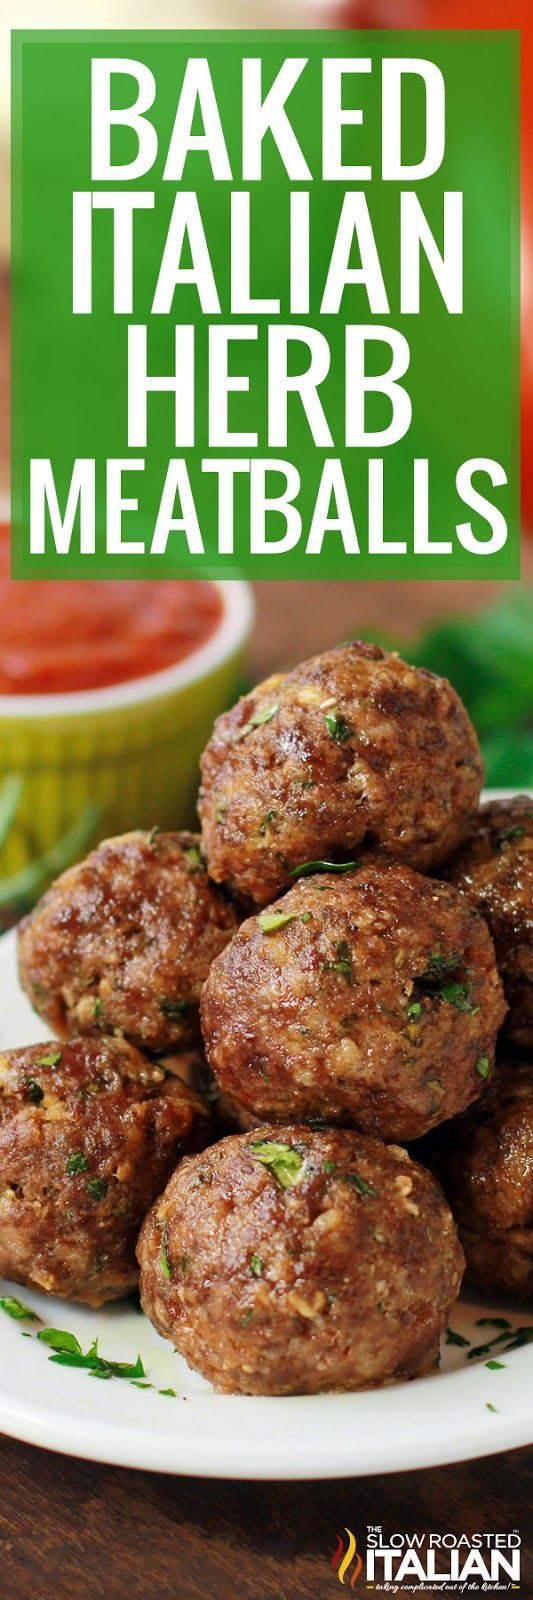 Best Ever Italian Herb Baked Meatballs are the perfect recipe to learn how to make meatballs the right way. They are truly the most amazing meatballs we have ever had. Our baked meatballs are beautifully browned on the outside and tender and juicy on the inside.